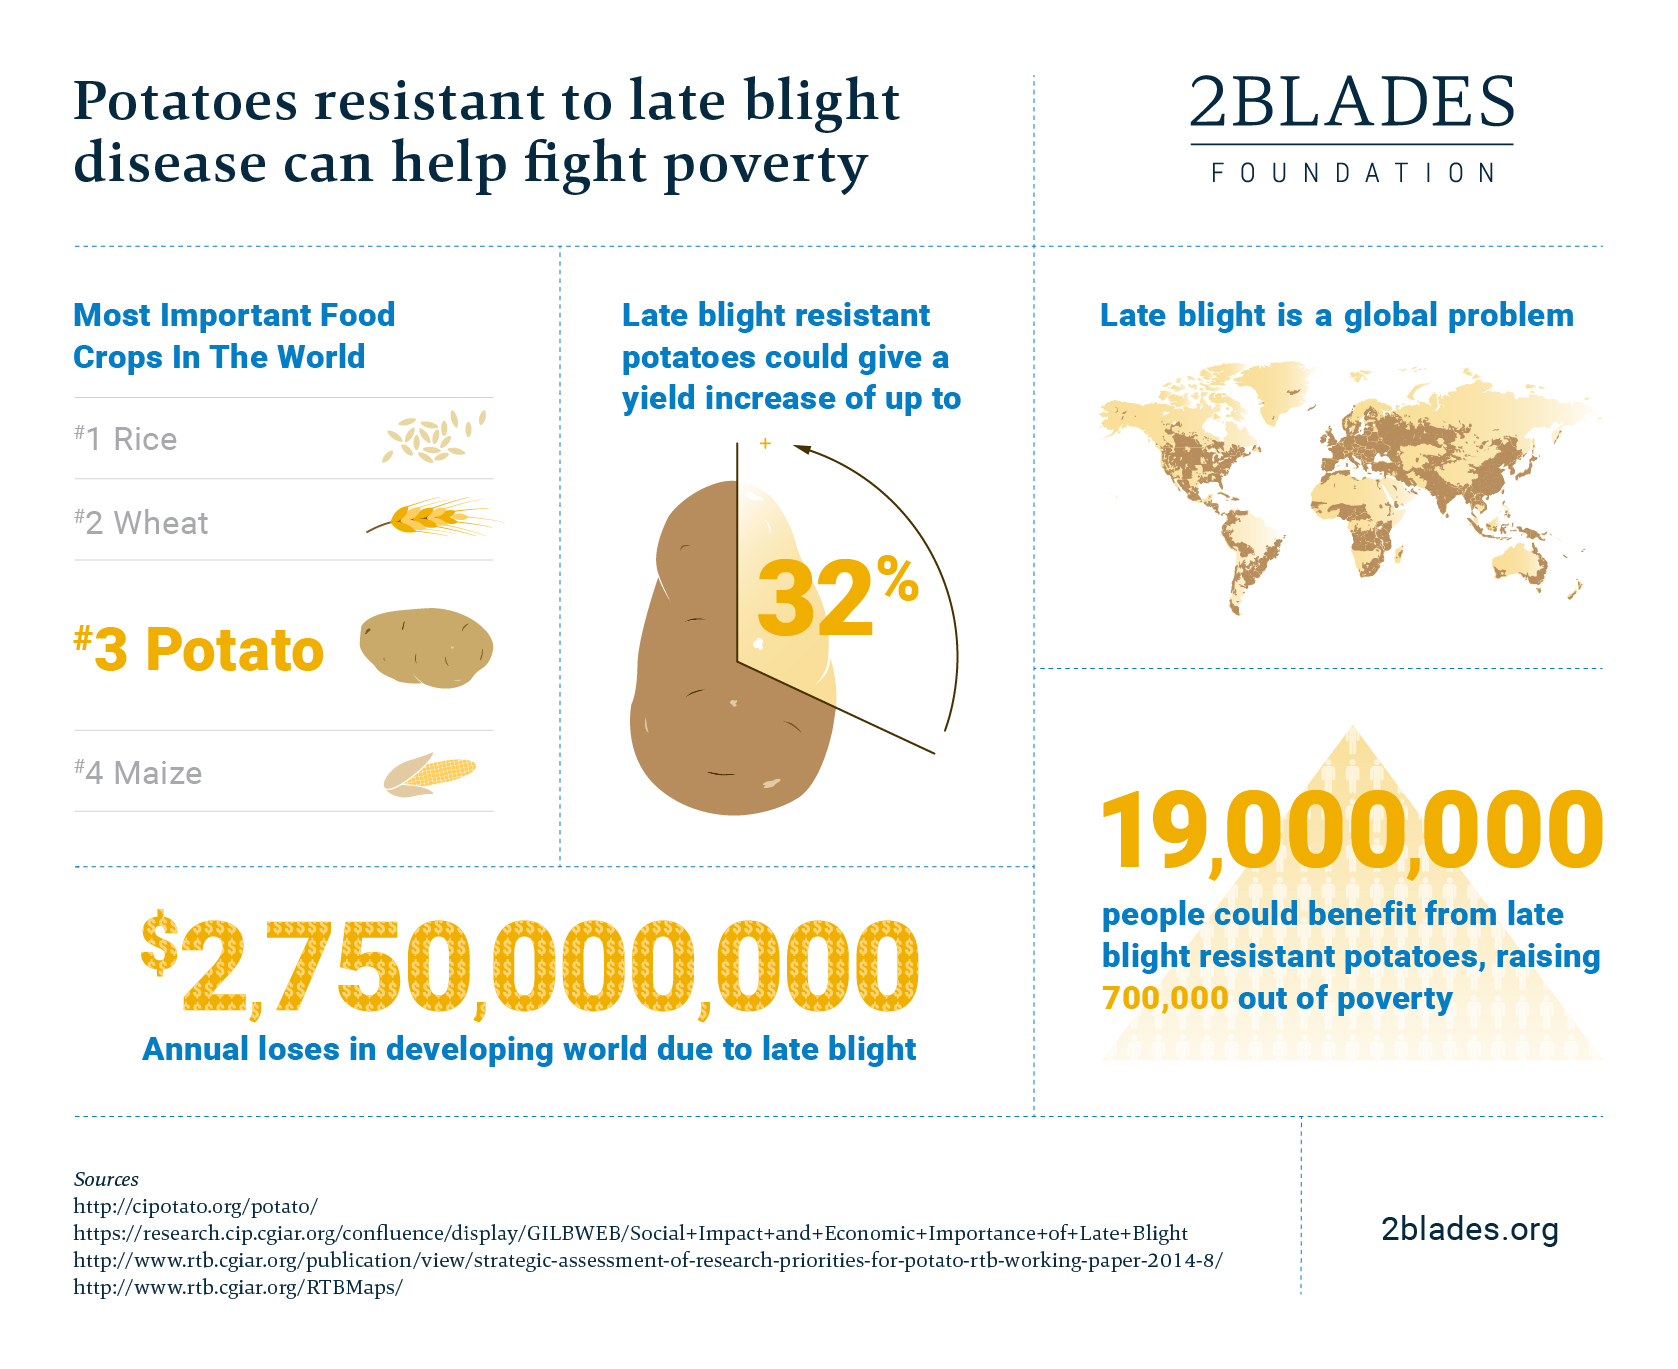 Late blight infographic